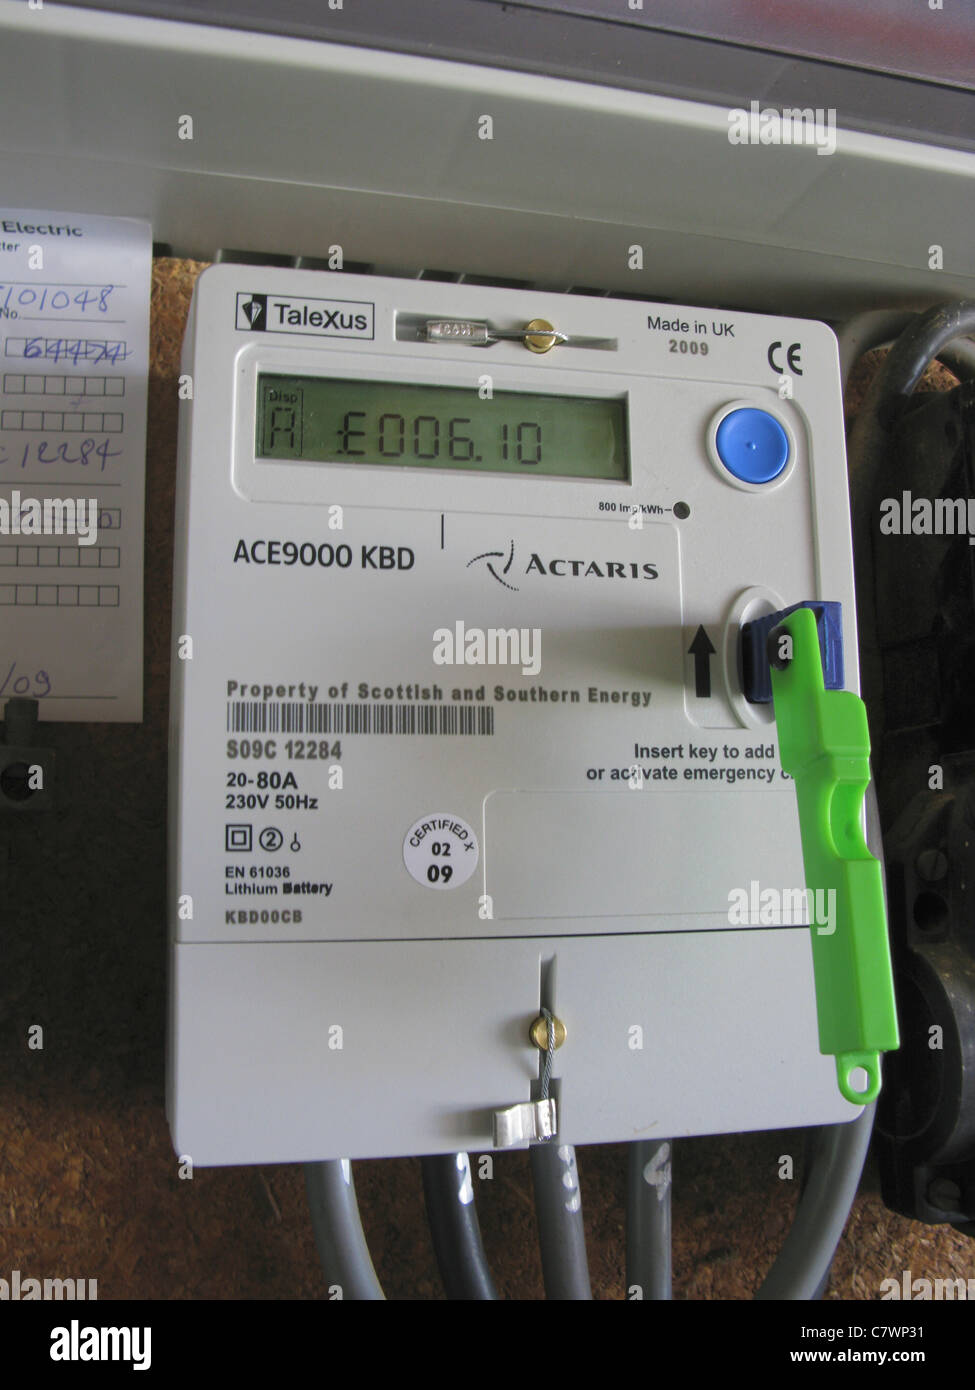 quantum key prepayment electric meter, paying for electricity as you use it - Stock Image